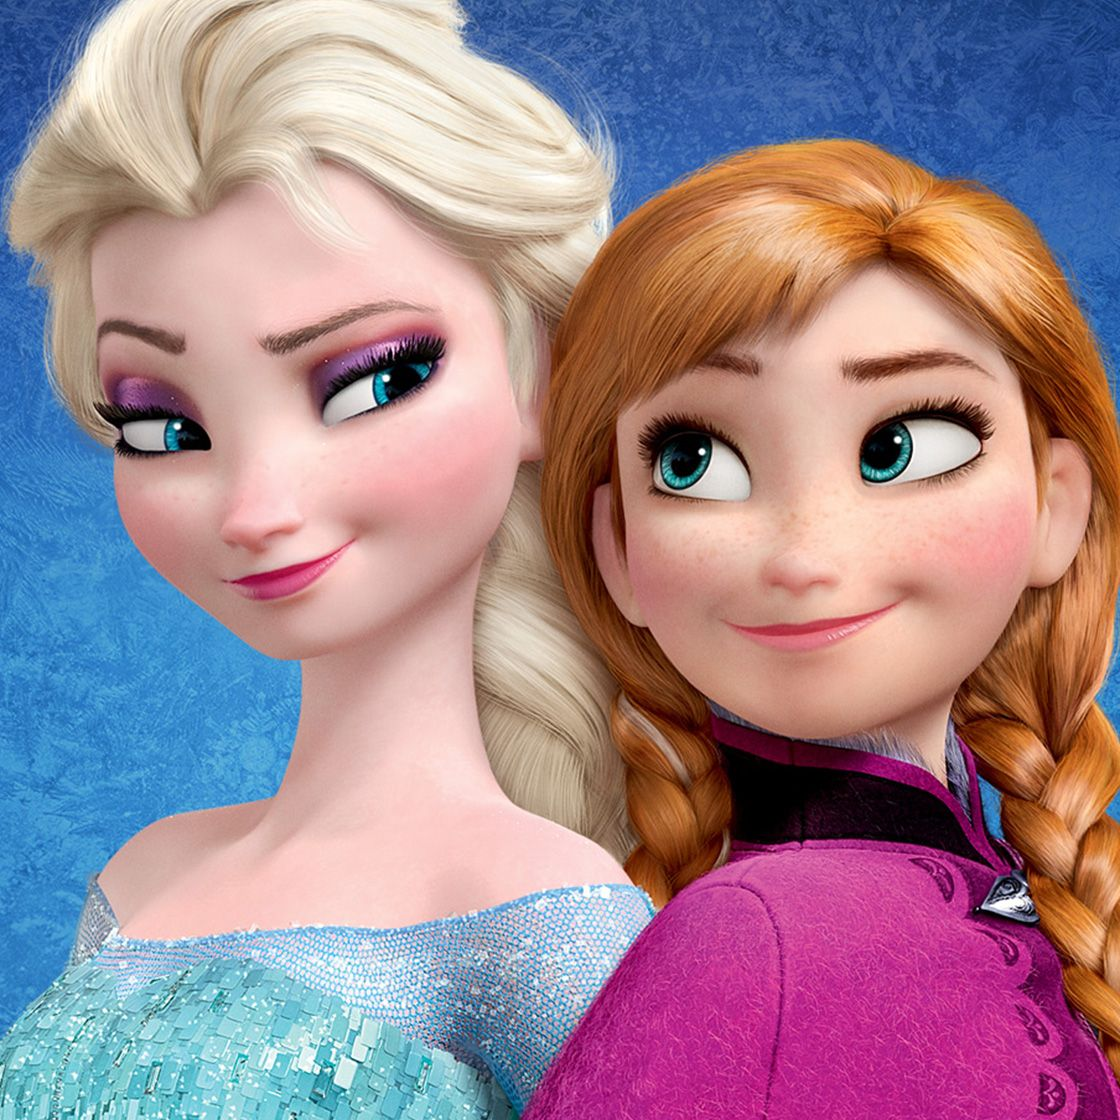 Disney Plus Every Single Princess Ranked By Feminist Credentials